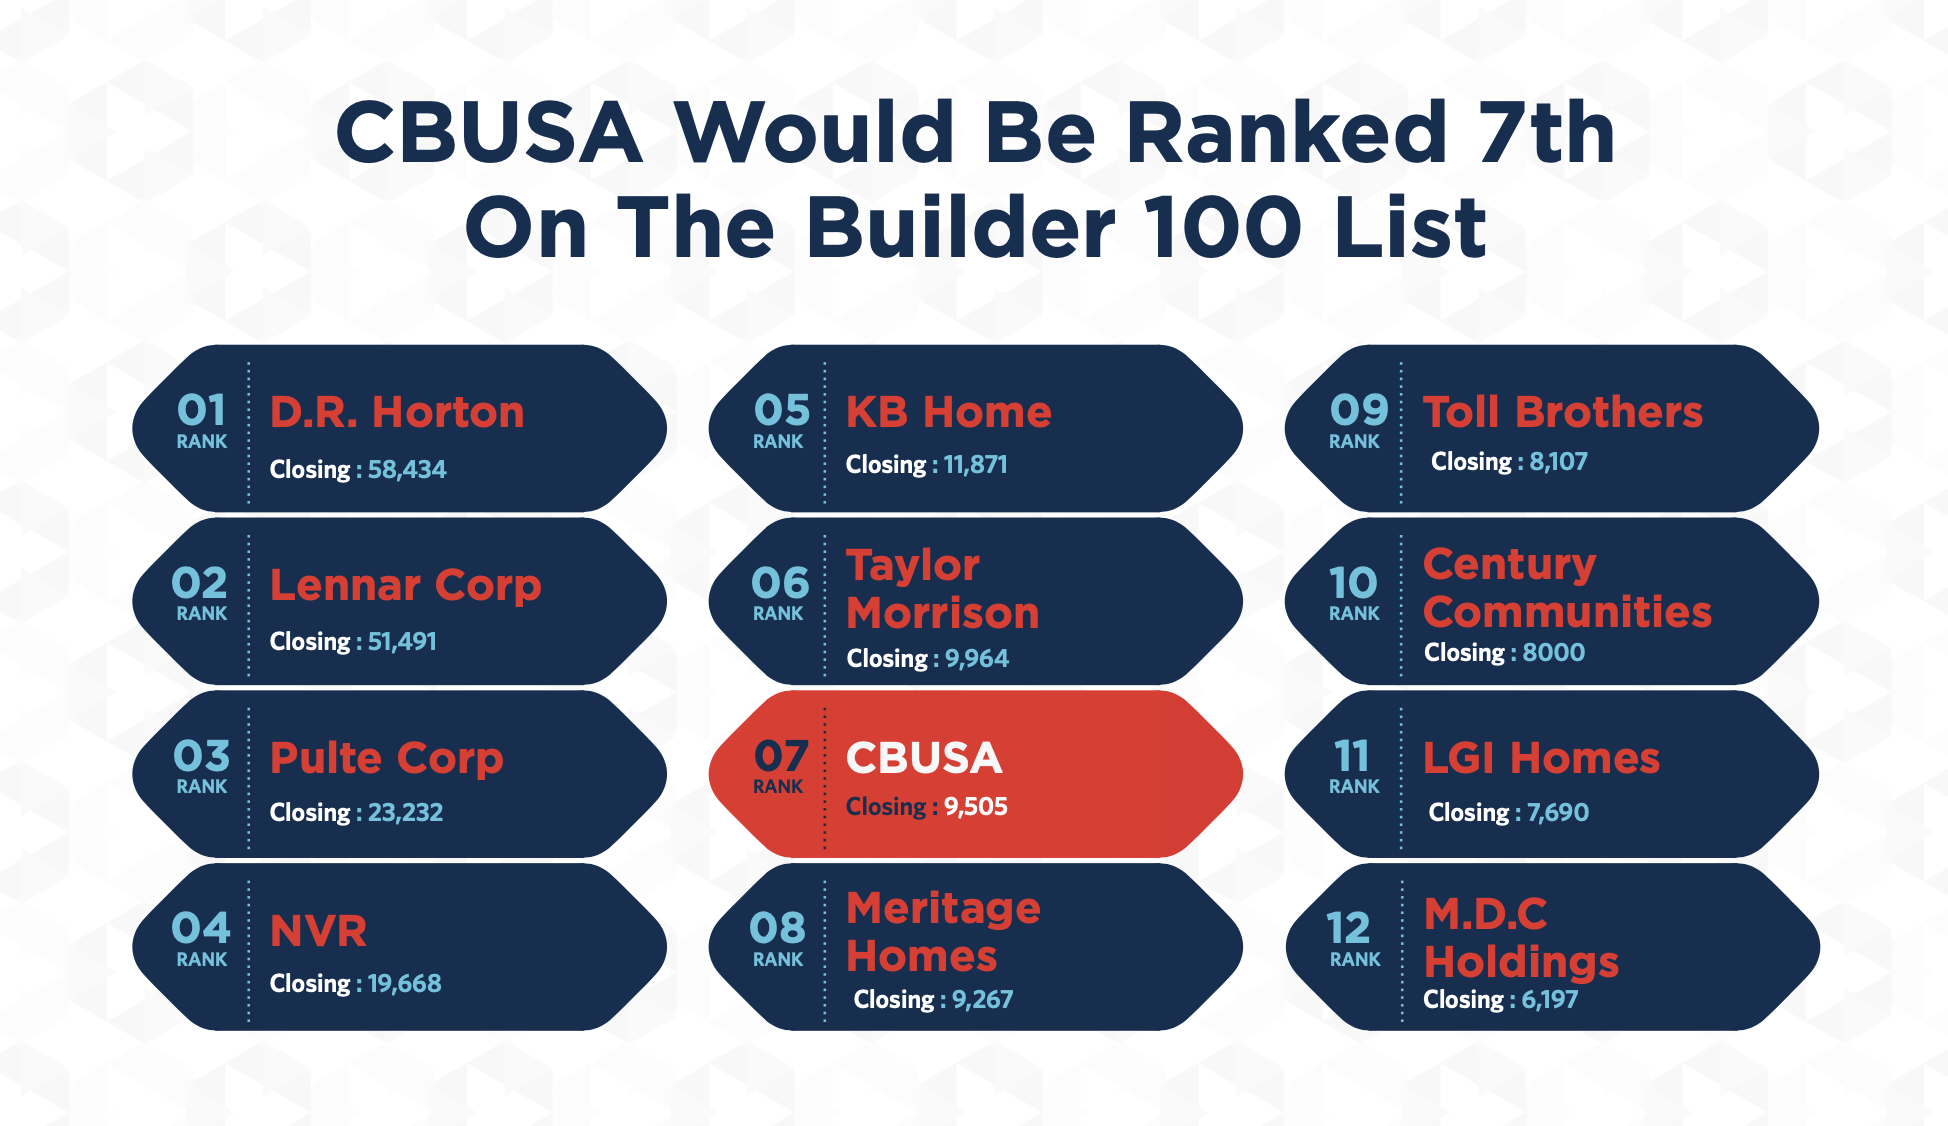 CBUSA is Ranked #7 on The Builder 100 List